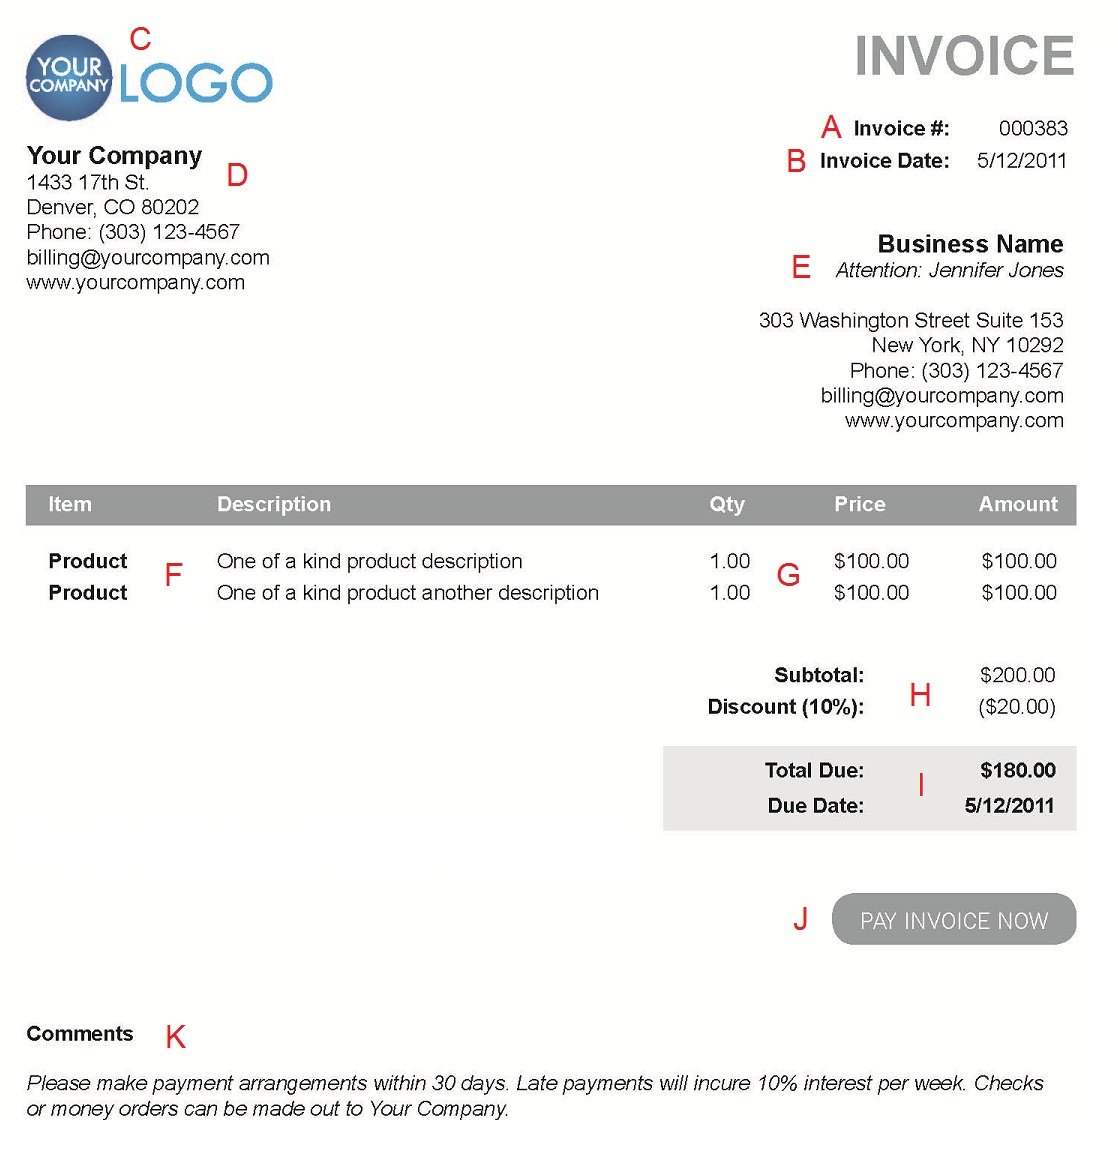 Coolmathgamesus  Marvelous The  Different Sections Of An Electronic Payment Invoice With Excellent A  With Nice Terms Of Invoice Also Tax Invoice Sample In Addition Excel Sample Invoice And Sample Invoice Terms As Well As Examples Of Invoice Templates Additionally Updated Invoice From Paysimplecom With Coolmathgamesus  Excellent The  Different Sections Of An Electronic Payment Invoice With Nice A  And Marvelous Terms Of Invoice Also Tax Invoice Sample In Addition Excel Sample Invoice From Paysimplecom